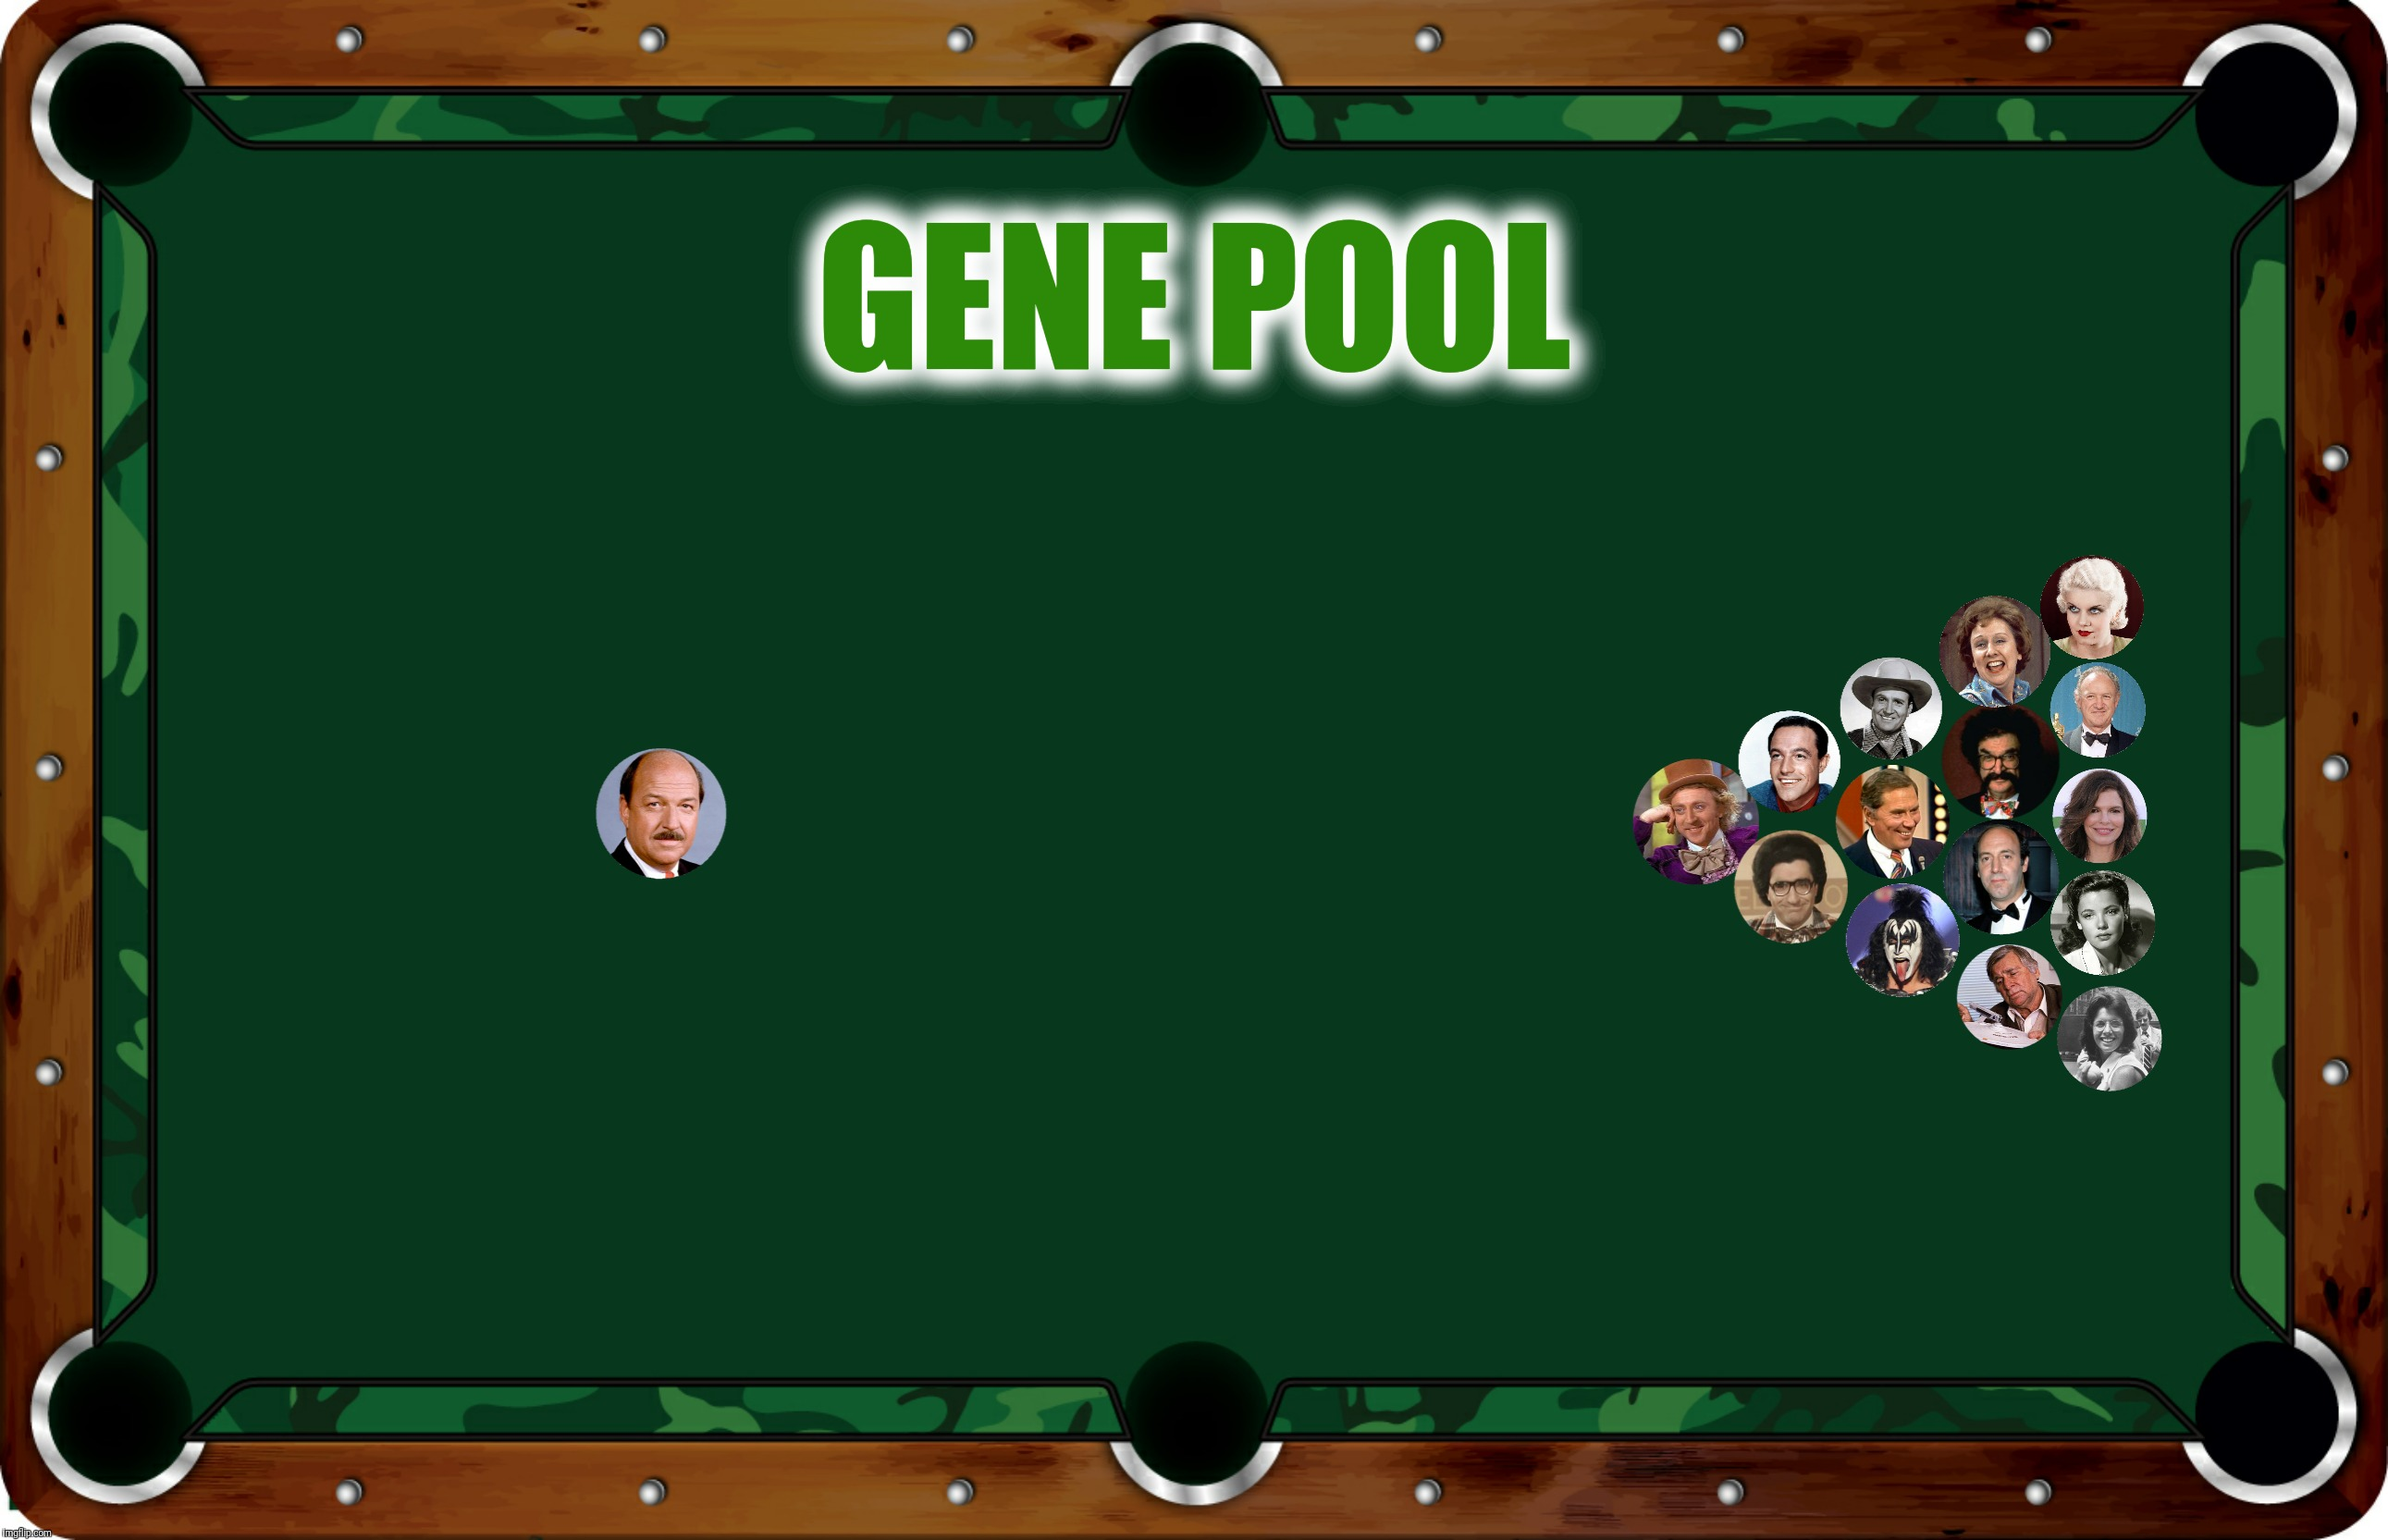 Bad Photoshop Sunday presents:  How many can you name? | GENE POOL | image tagged in bad photoshop sunday,pool,gene,jean,jeanne | made w/ Imgflip meme maker